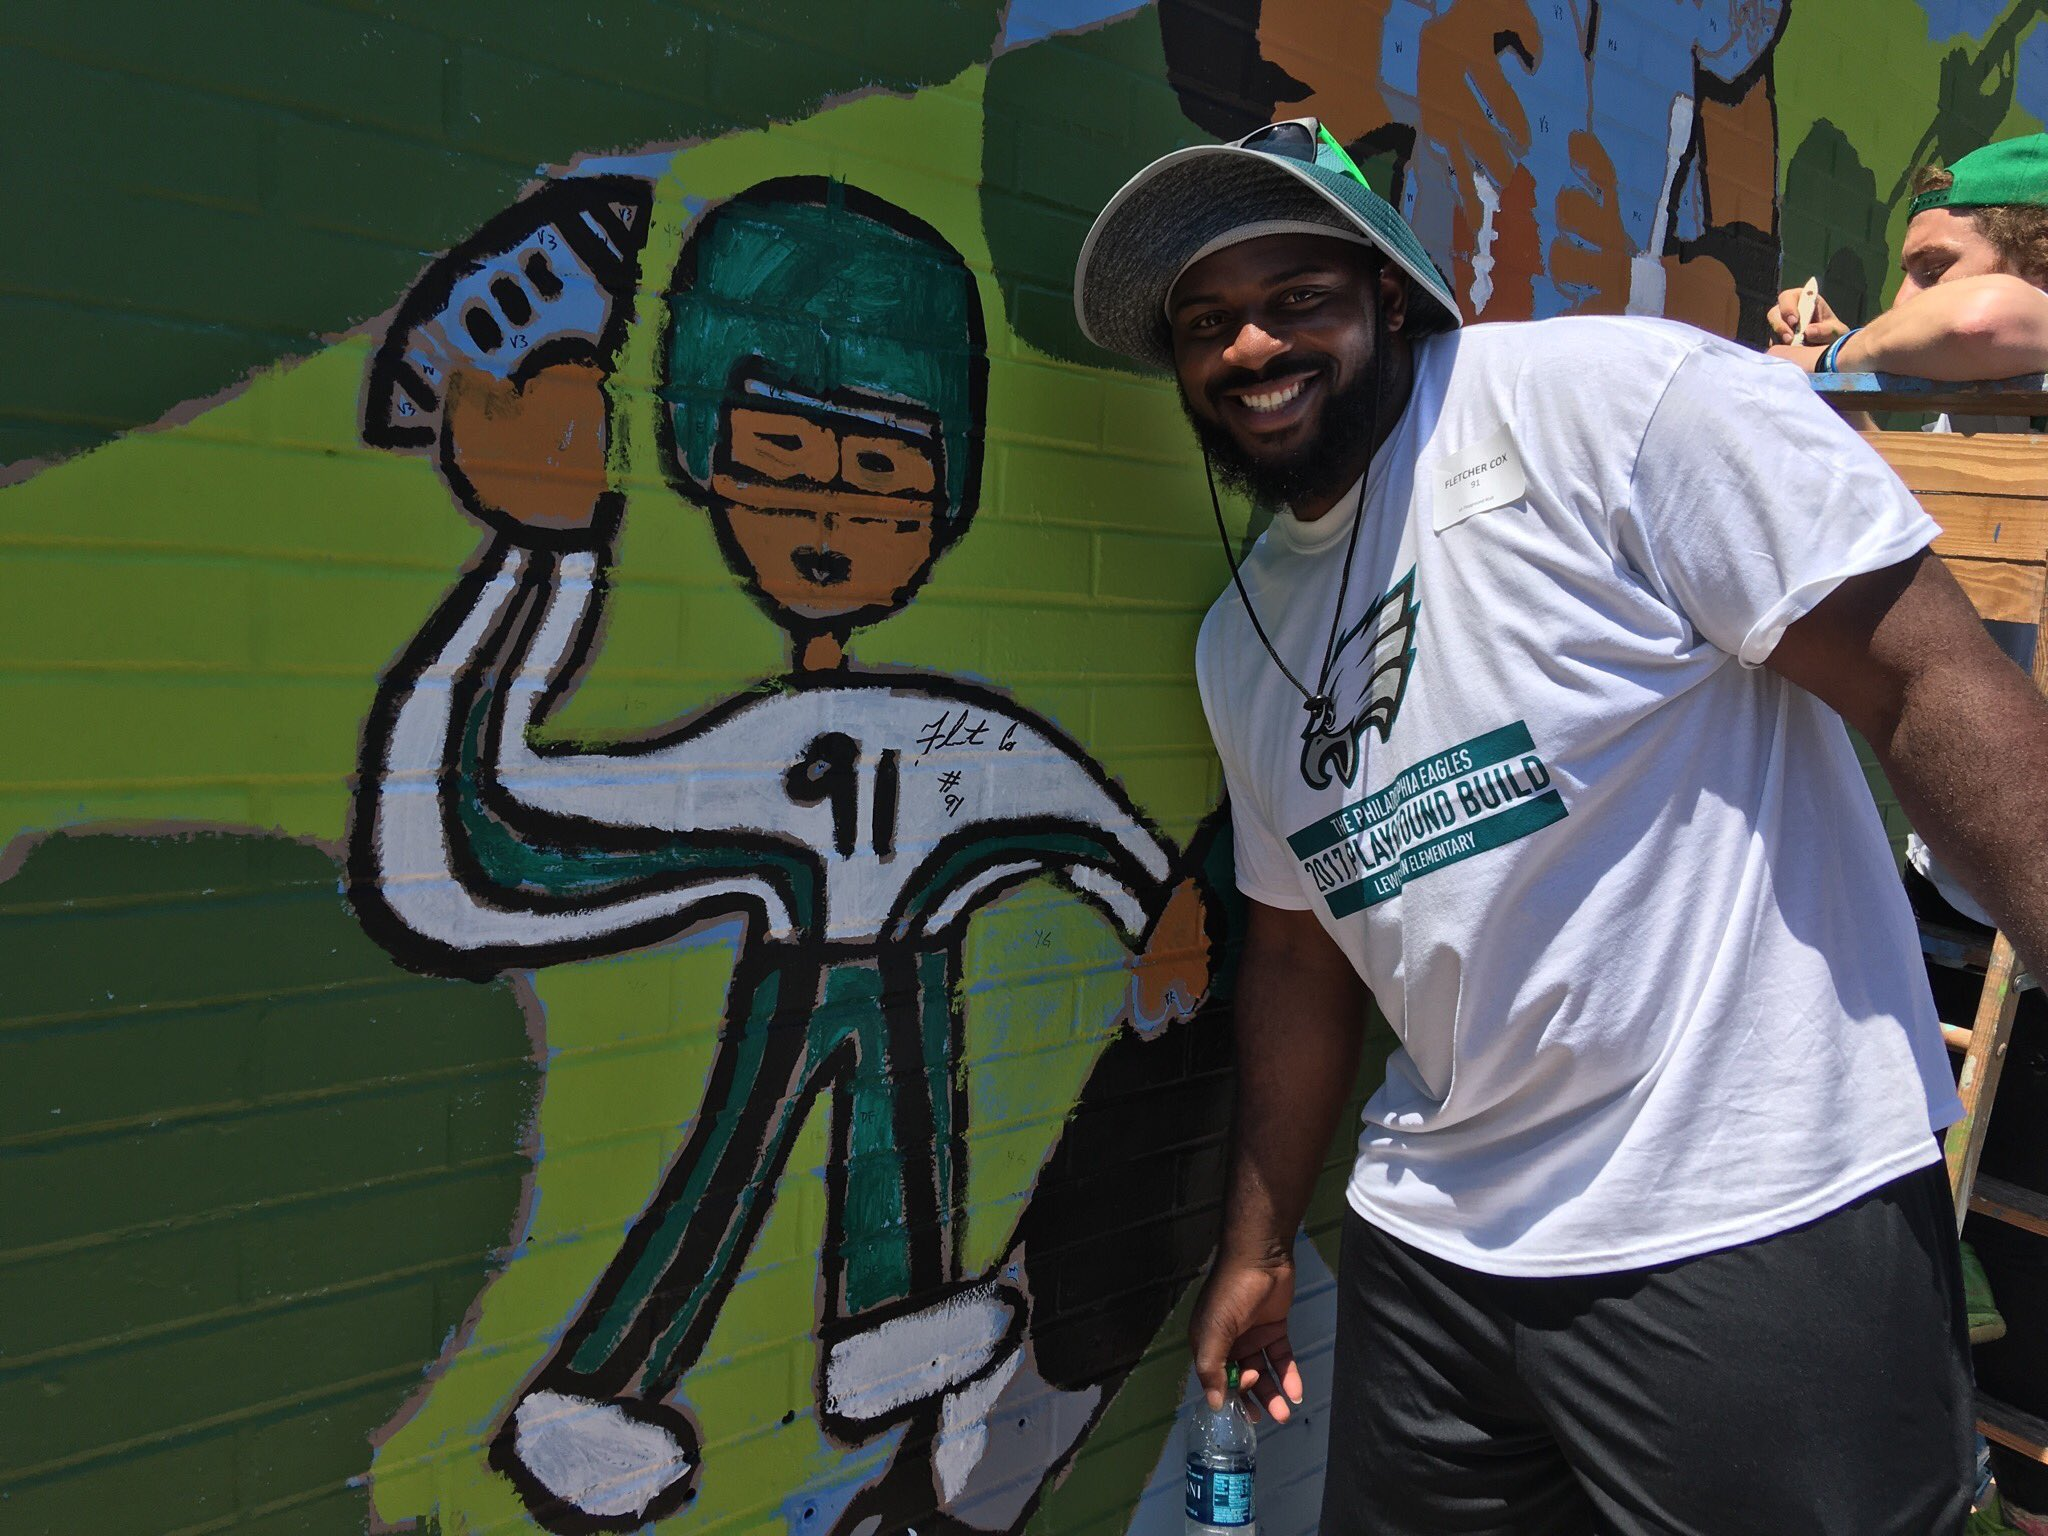 When you make a surprise cameo on a mural, you've got to sign it. #EaglesBuild https://t.co/fgytPW3nE3